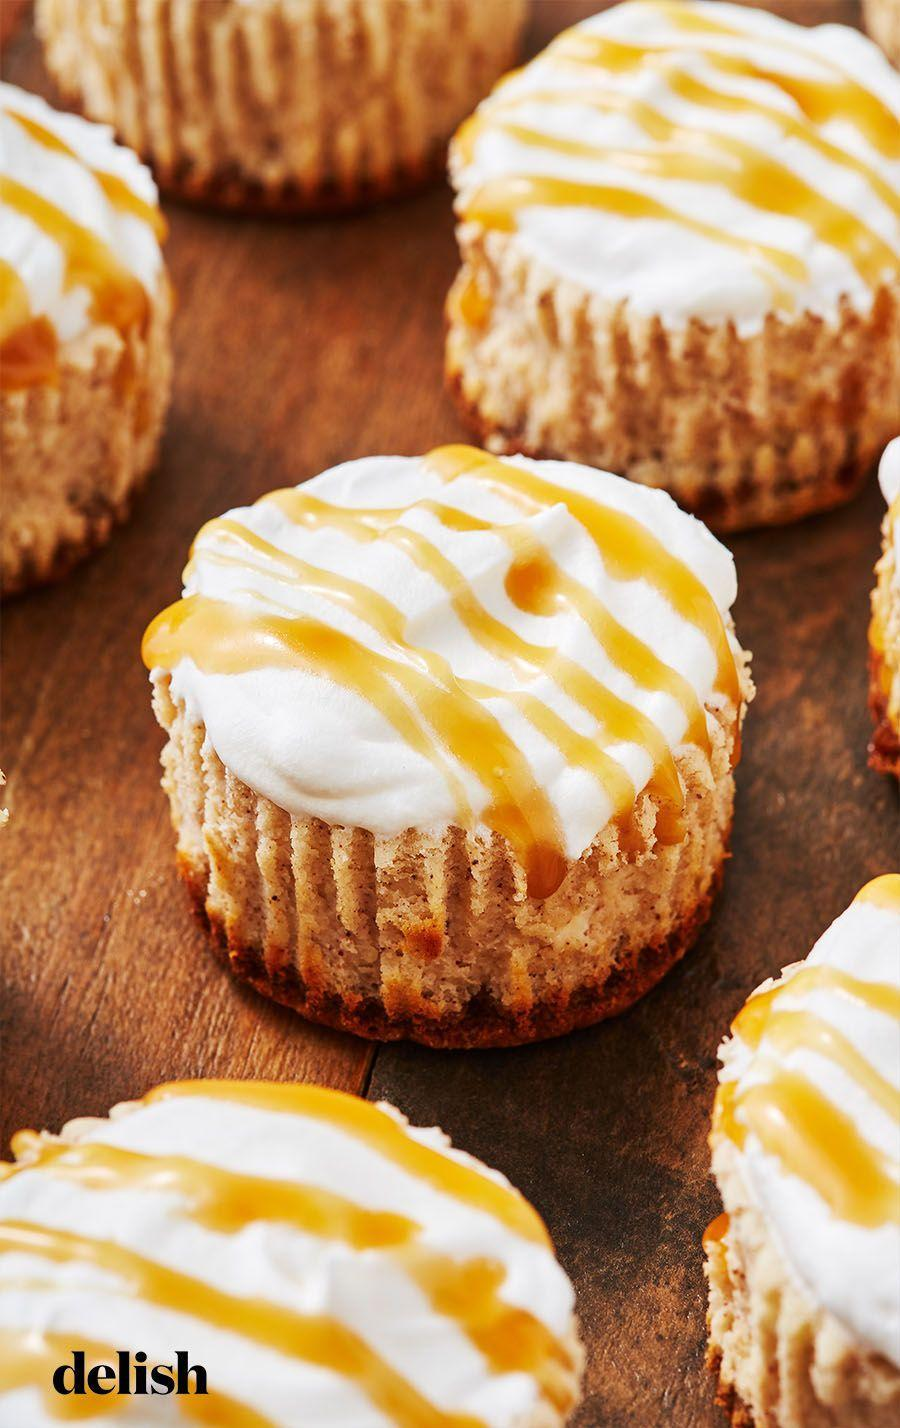 """<p>The cutest dessert to bring to the holiday party. </p><p>Get the recipe from <a href=""""https://www.delish.com/cooking/recipe-ideas/recipes/a50559/mini-eggnog-cheesecakes-recipe/"""" rel=""""nofollow noopener"""" target=""""_blank"""" data-ylk=""""slk:Delish"""" class=""""link rapid-noclick-resp"""">Delish</a>. </p>"""